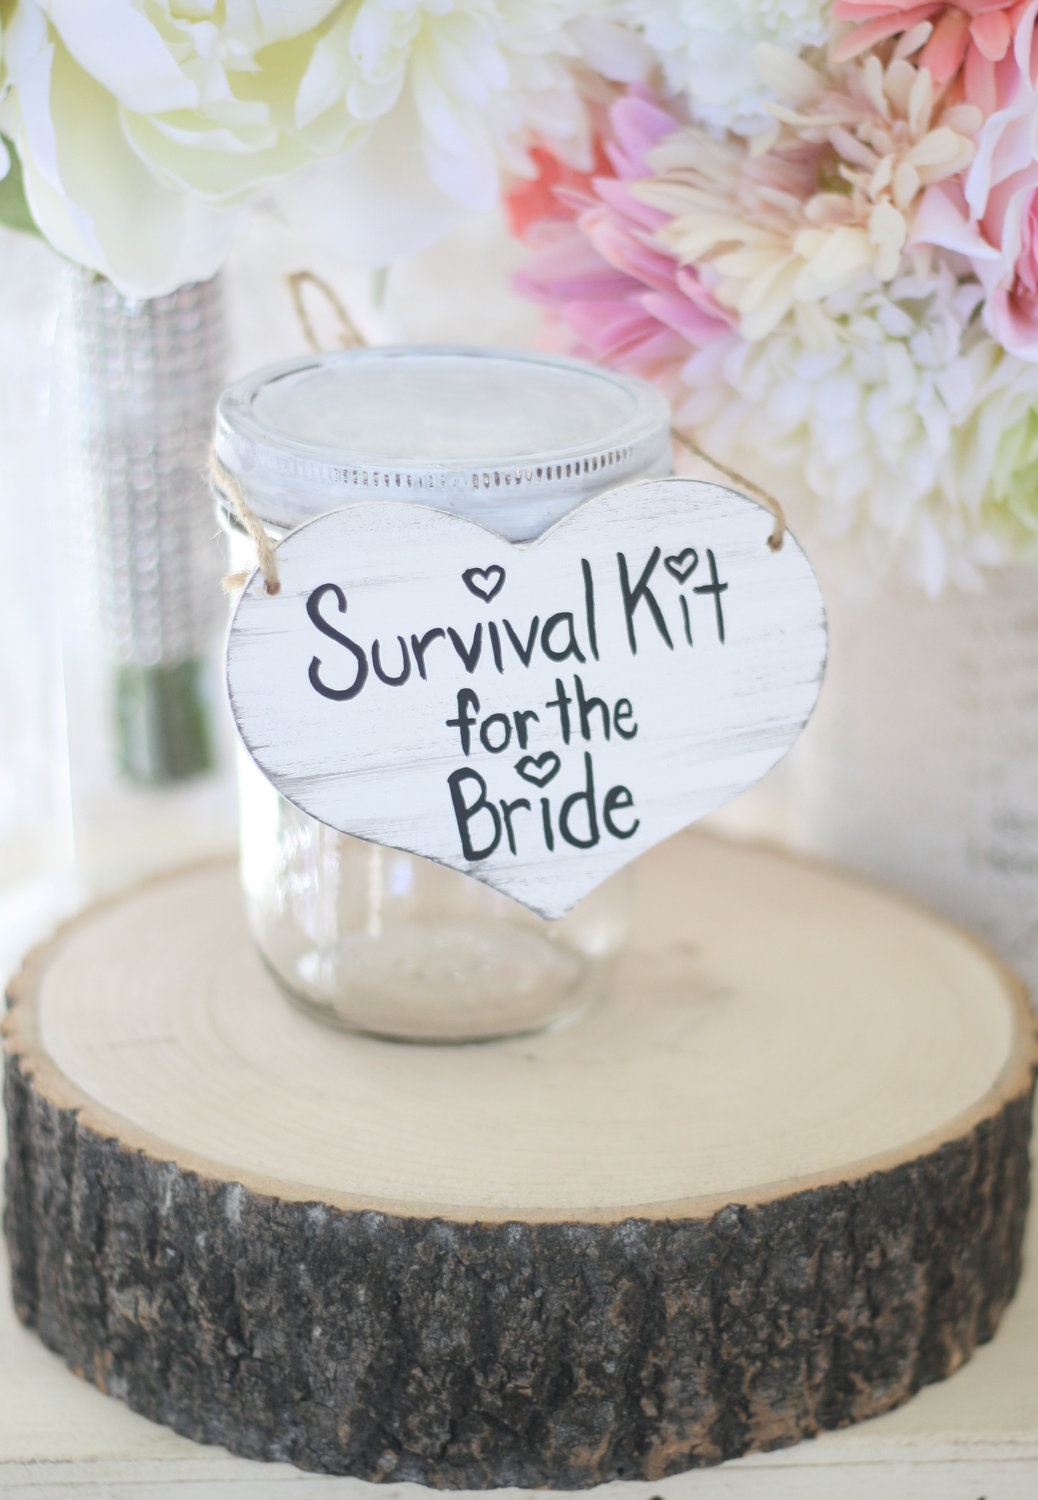 Day Of Wedding Gifts For Bride Suggestions : 39 Rustic Chic Wedding Decoration IdeasMODwedding